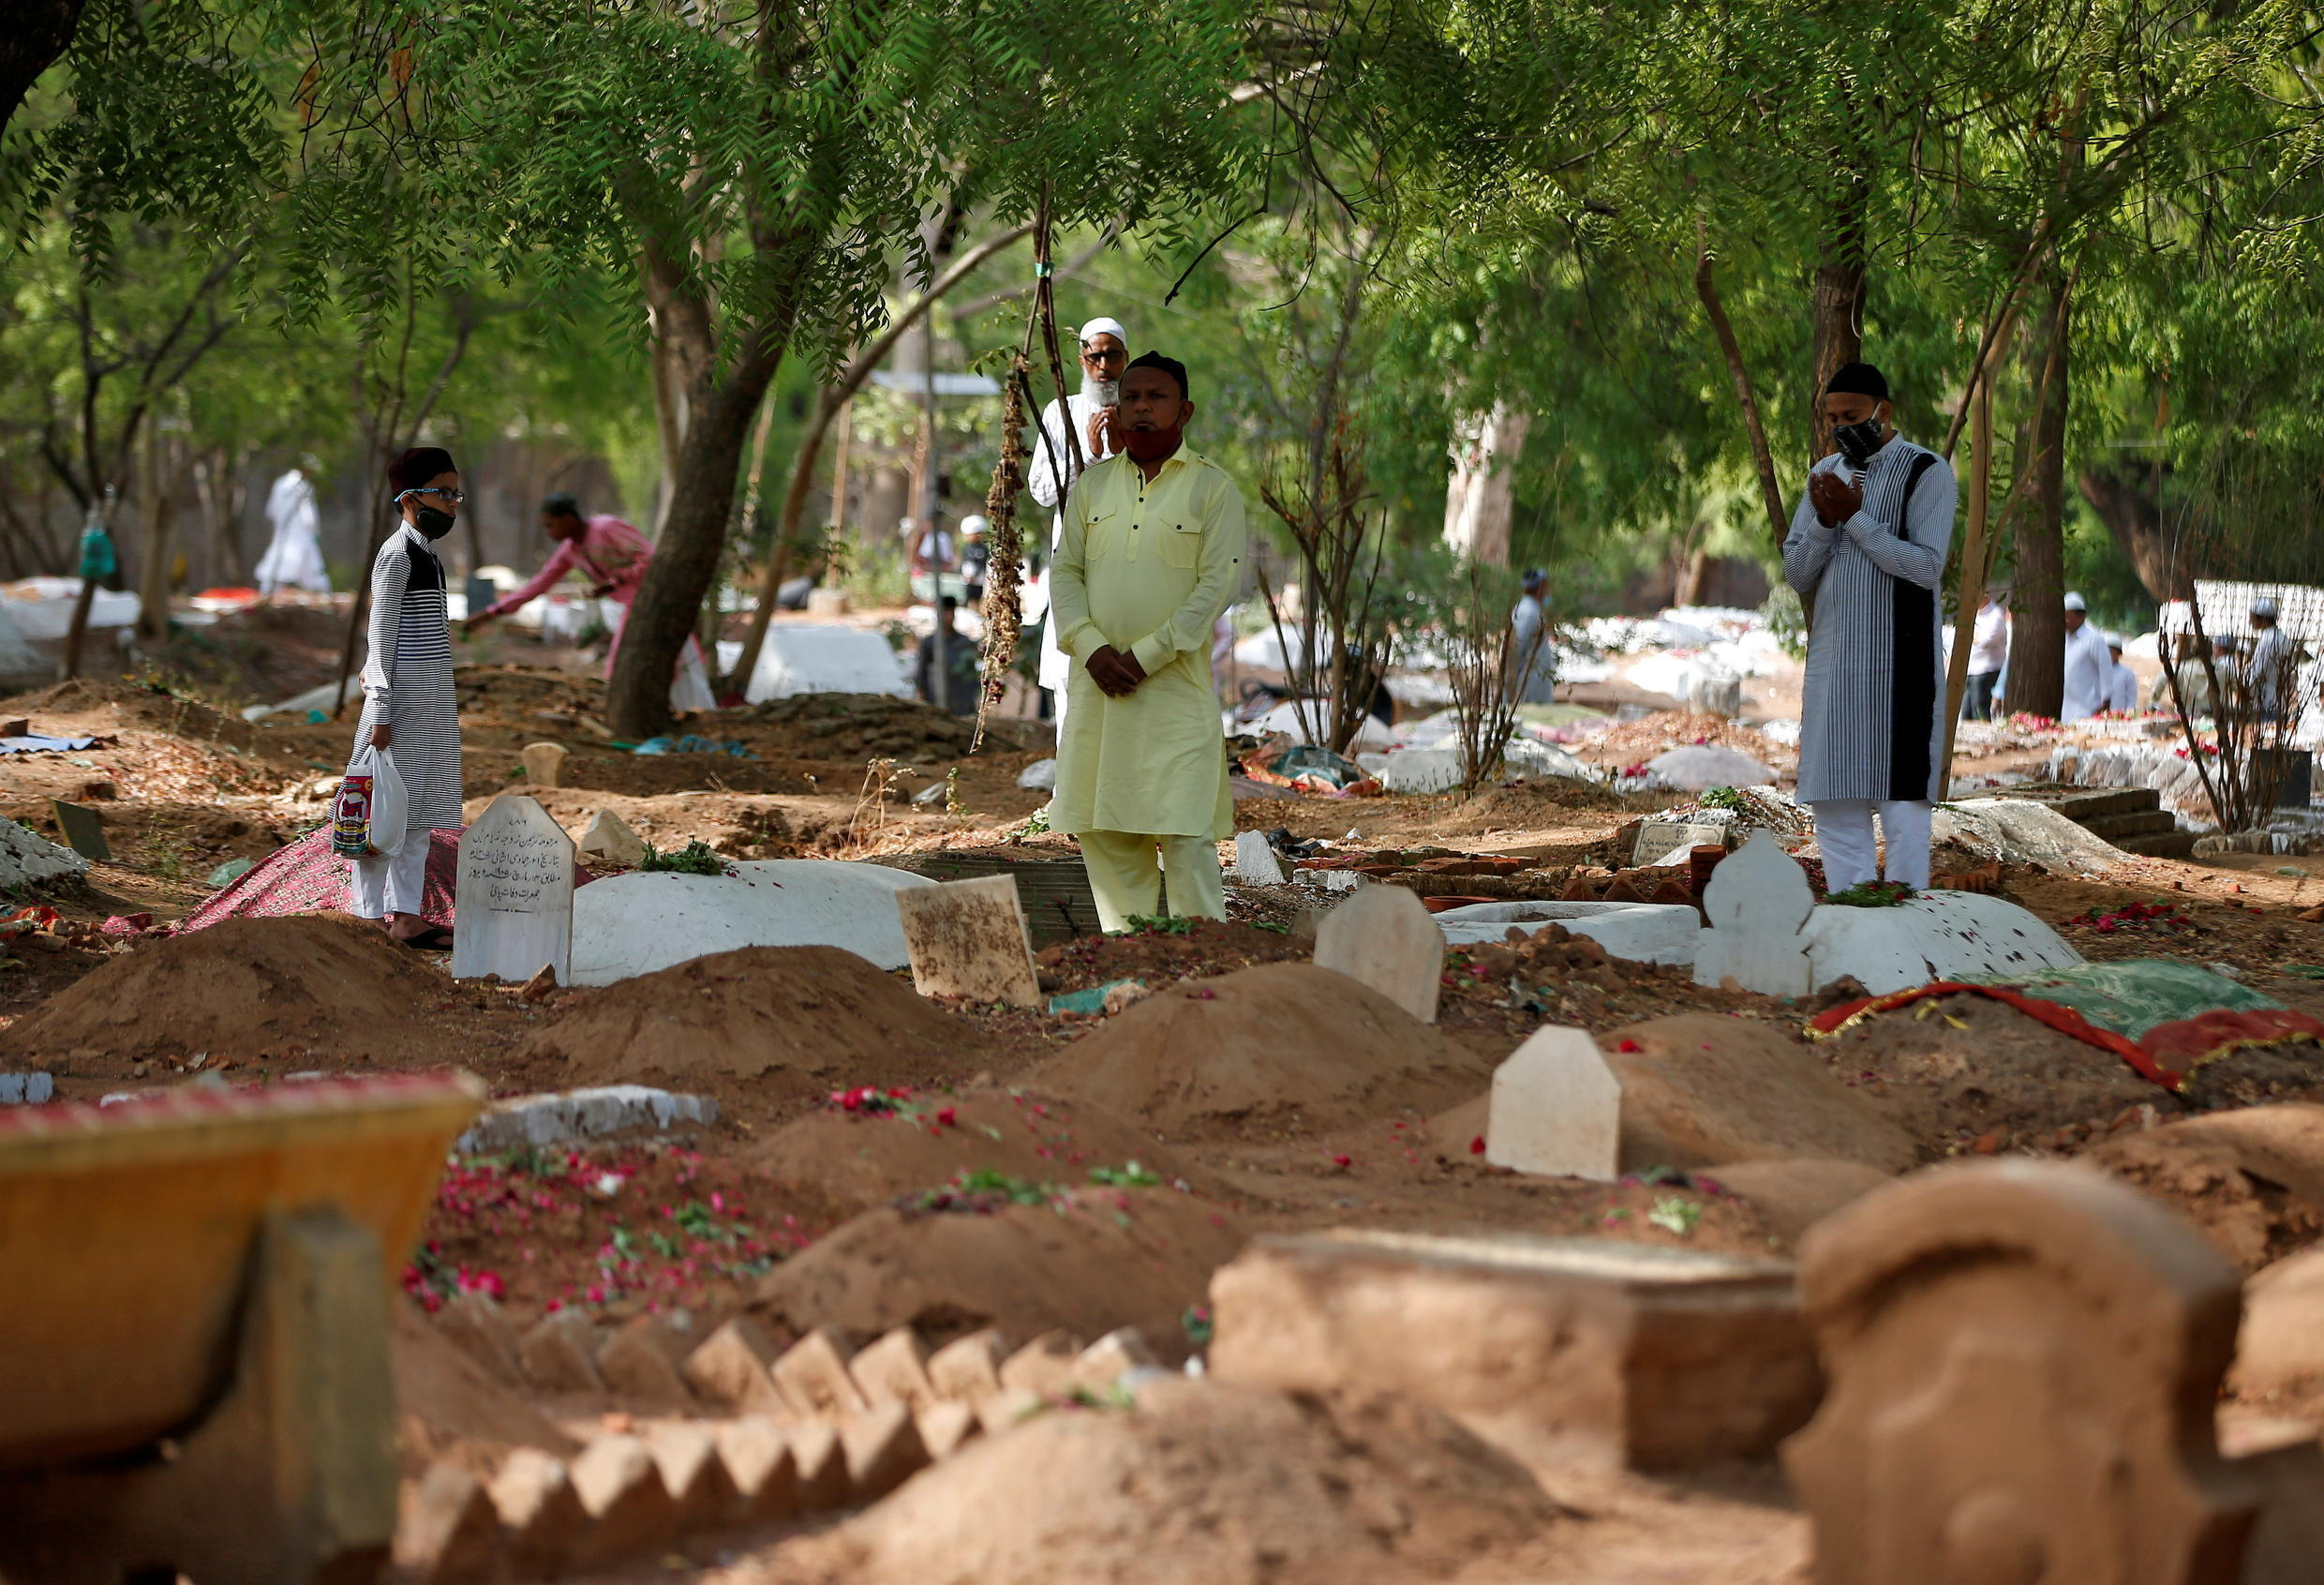 Muslims pray next to the graves of their relatives, including those who died from Covid-19, to mark Eid al-Fitr in Ahmedabad, India, 14 May, 2021